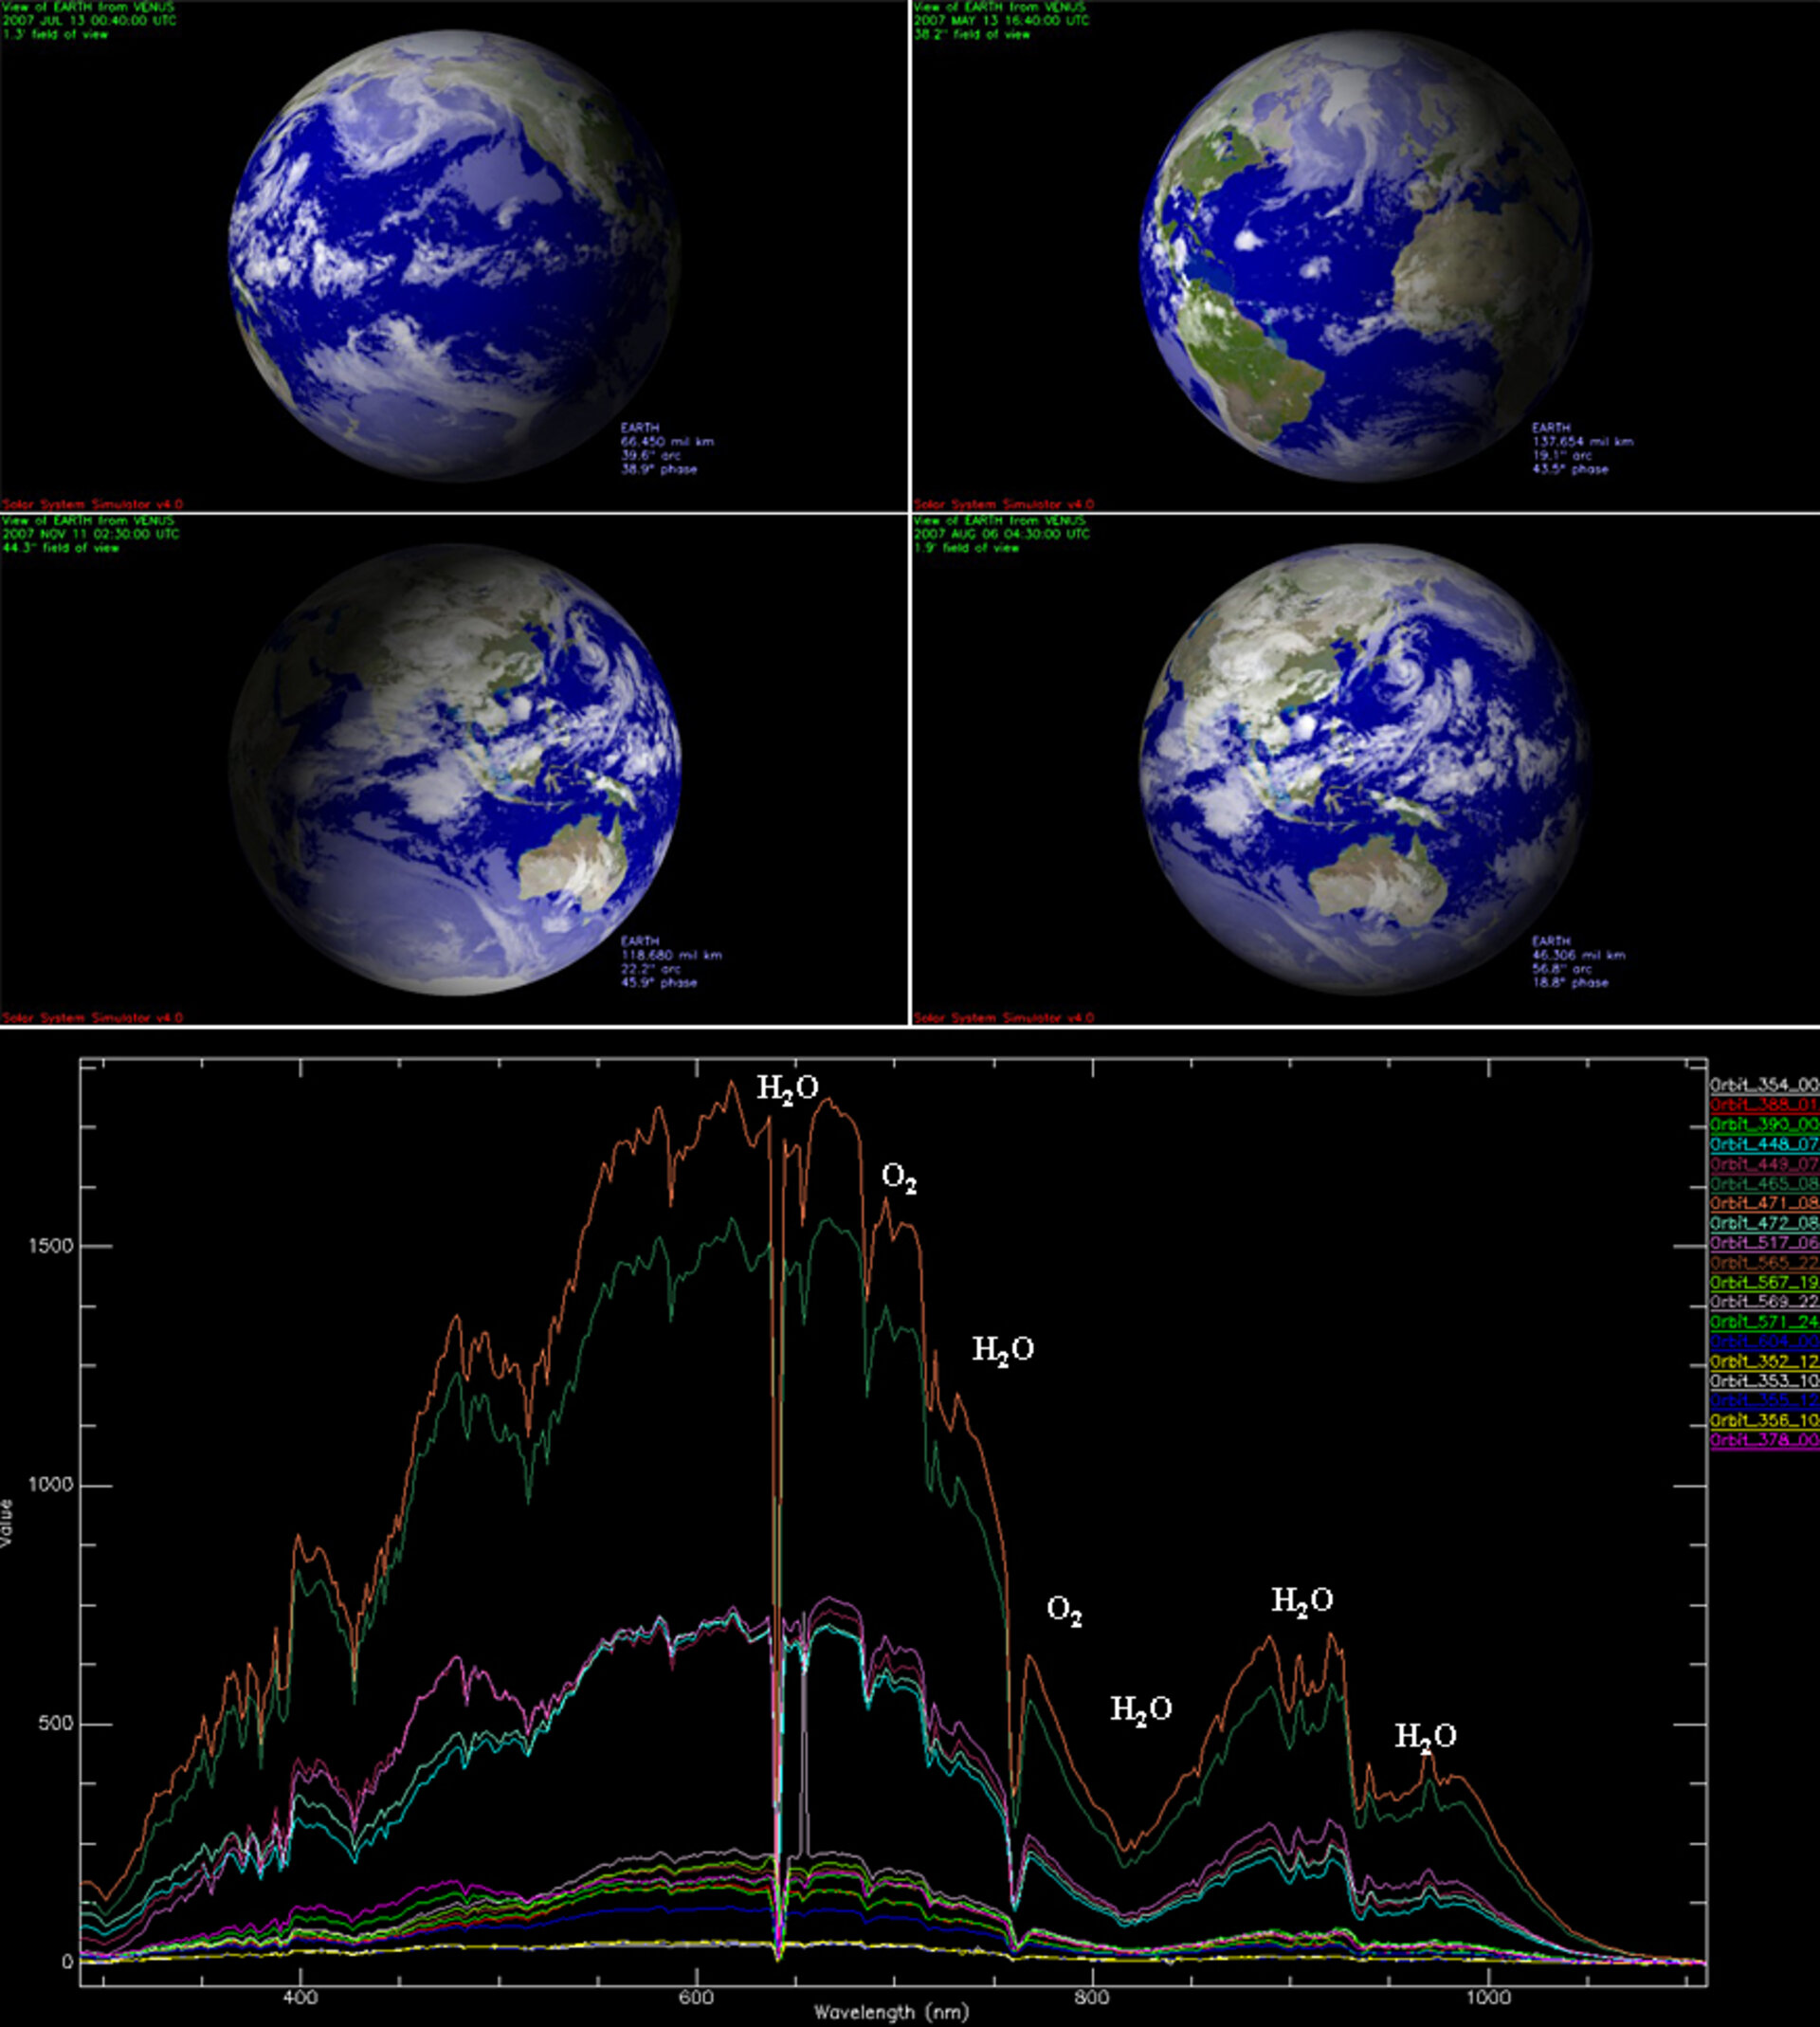 Earth's oxygen and water as detected by Venus Express